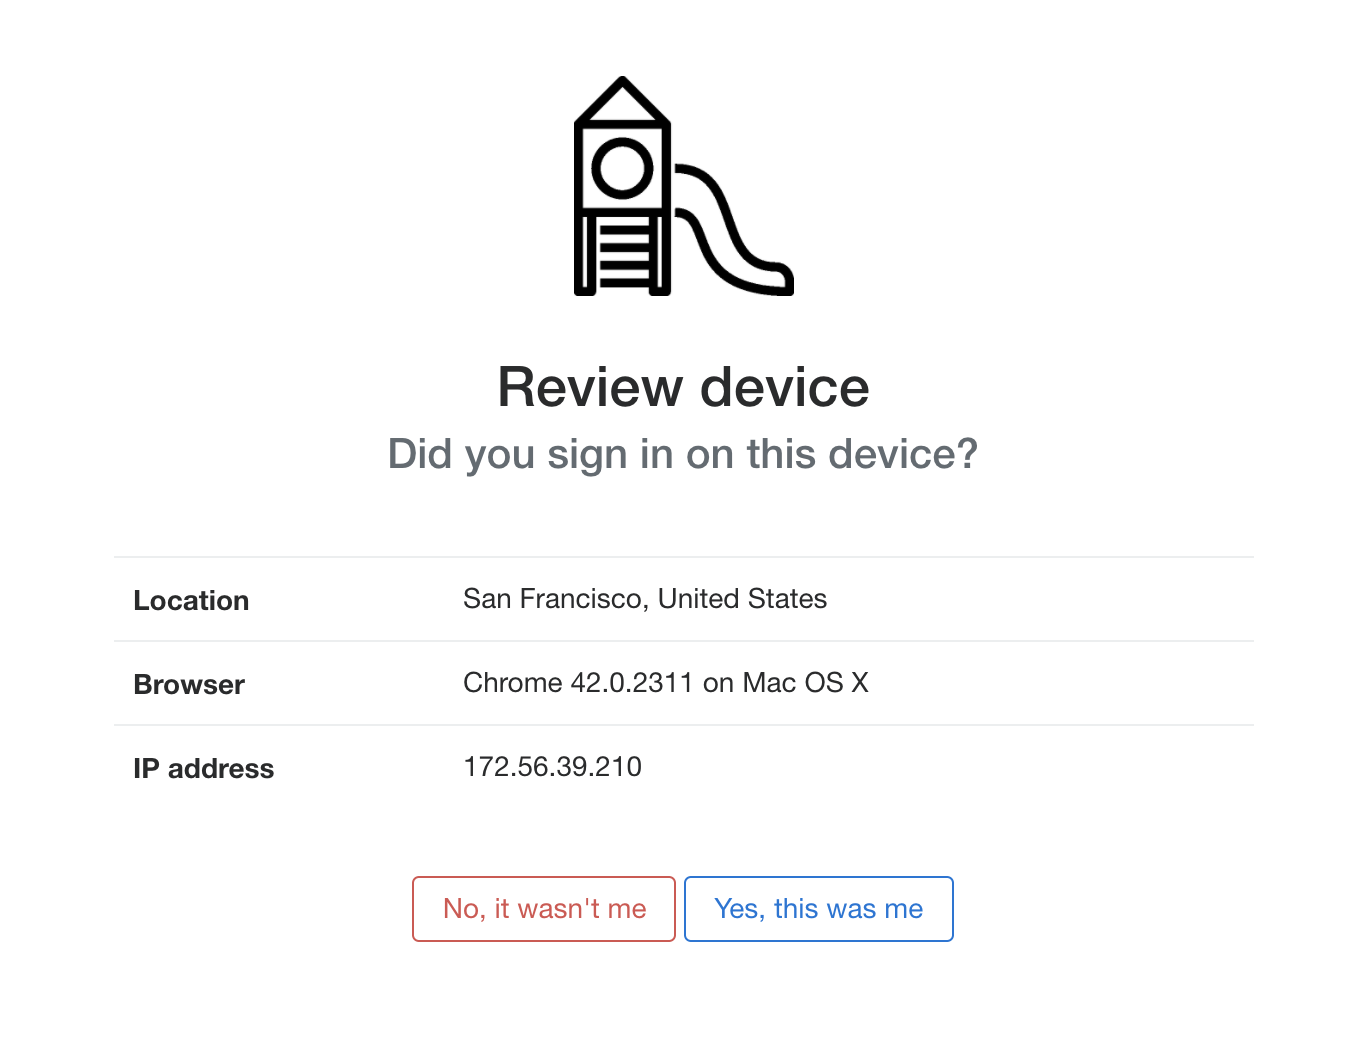 An example prompt asking a user if they recognize the device details